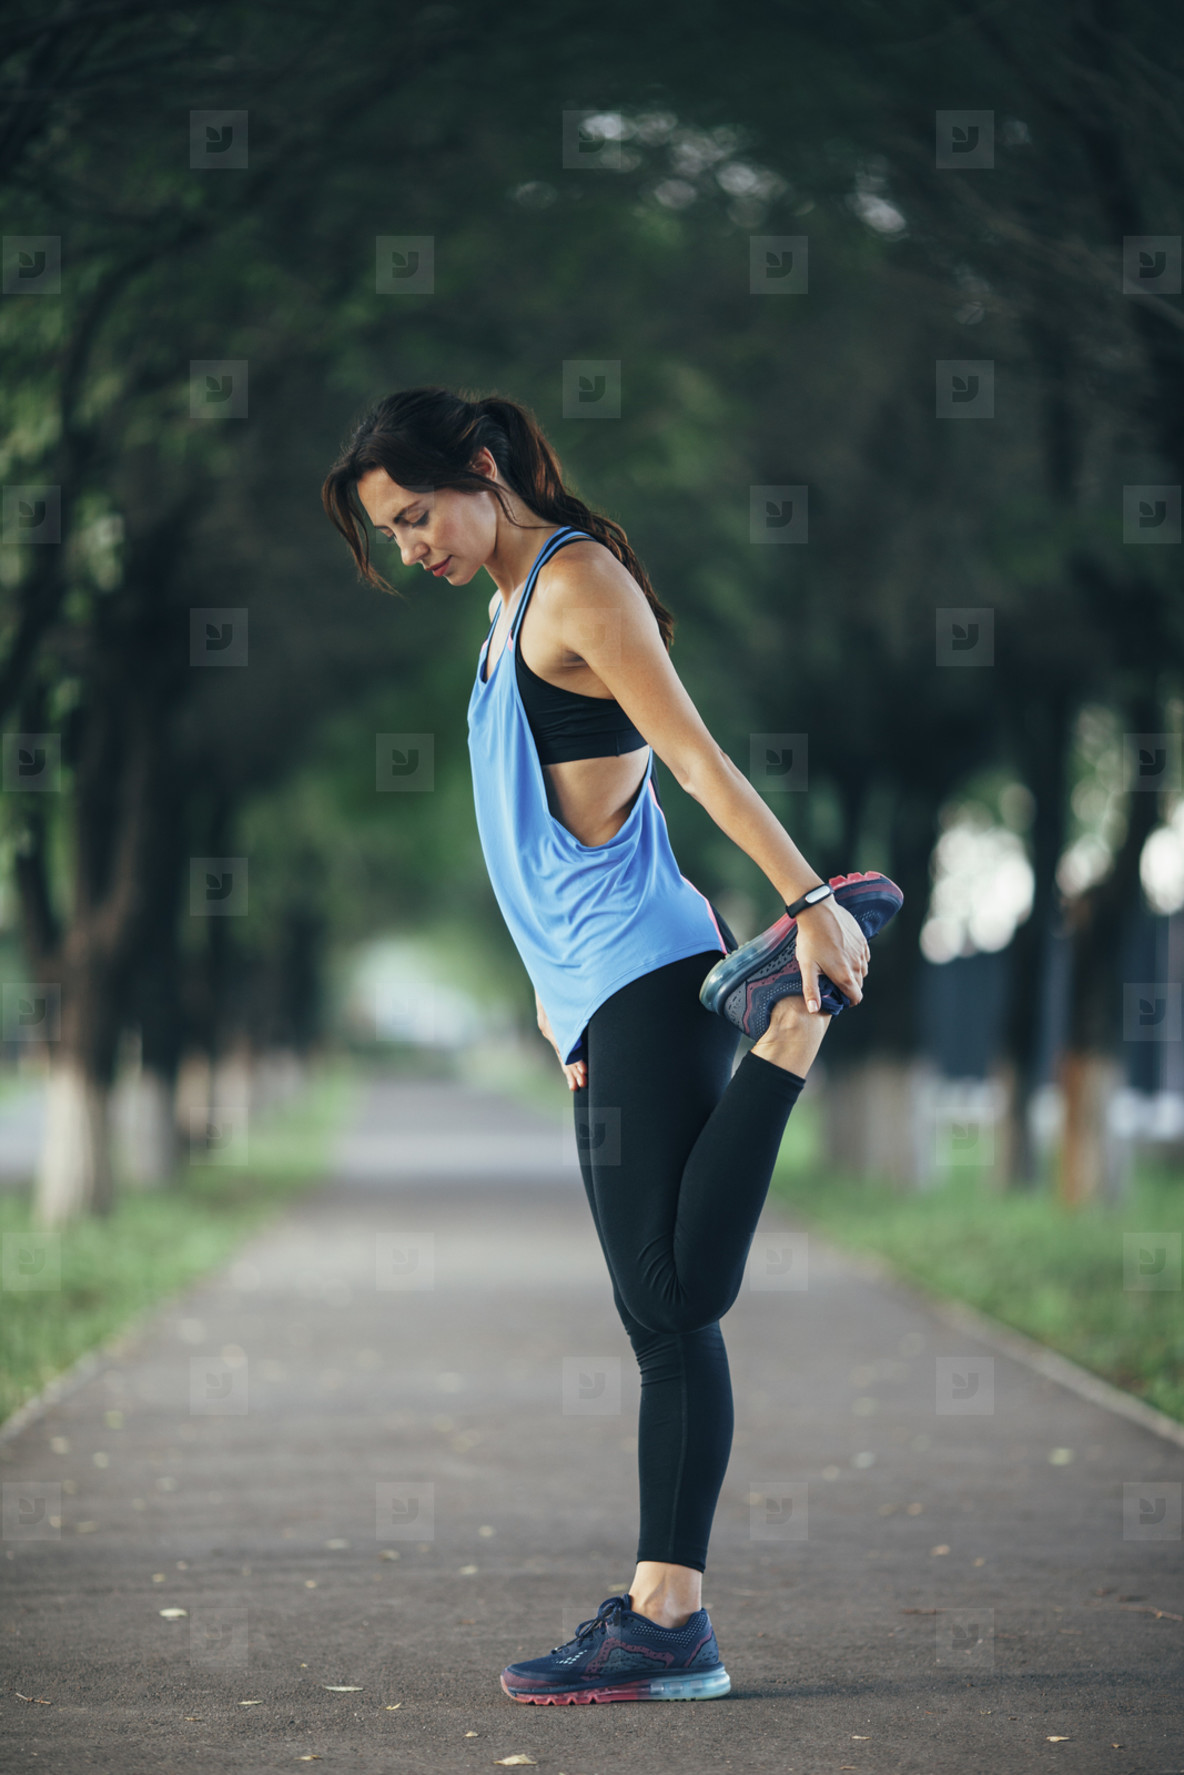 Stretching To Run  01